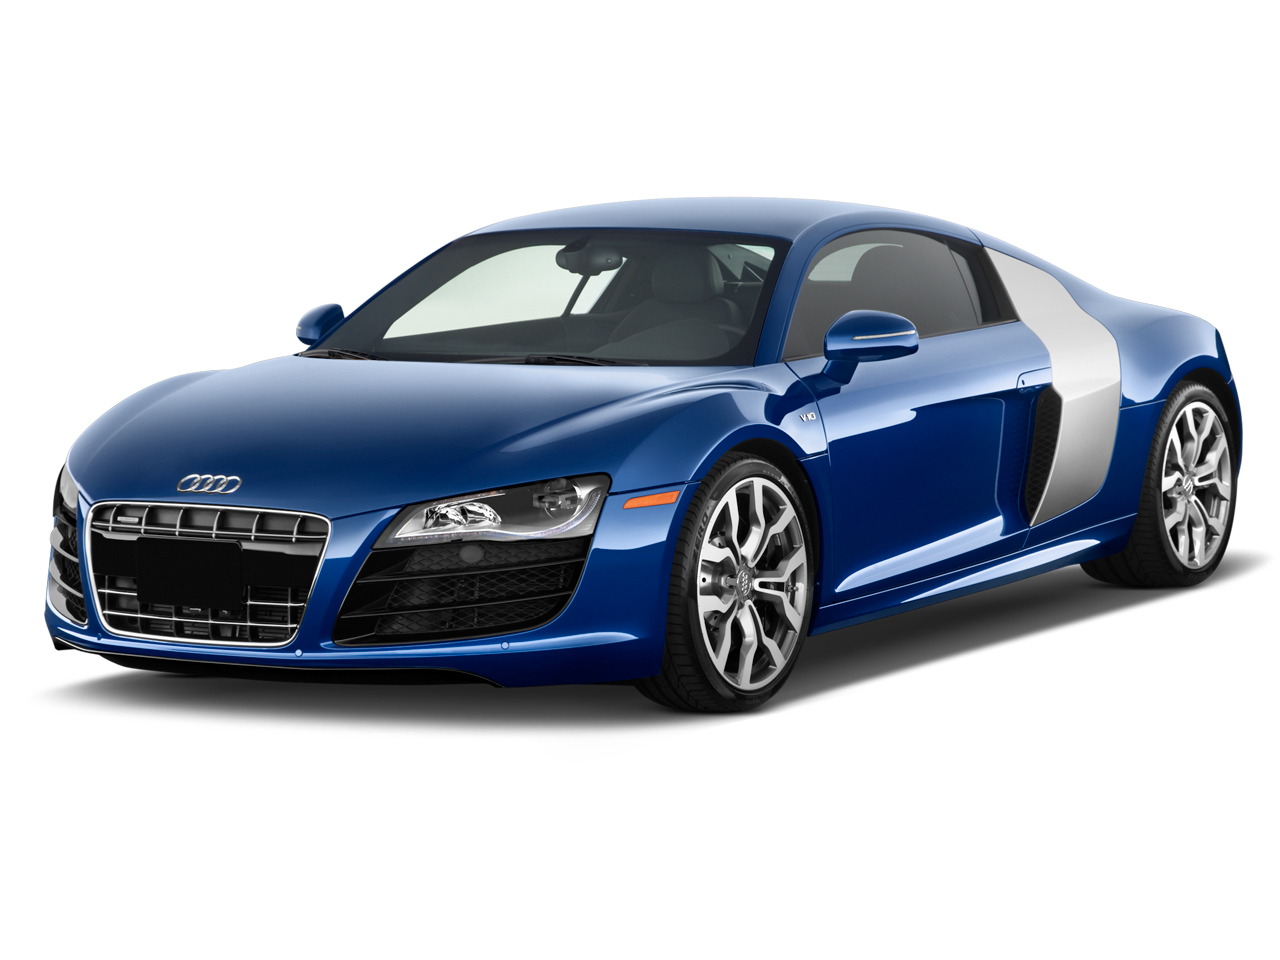 2011 audi r8 review and news motorauthority. Black Bedroom Furniture Sets. Home Design Ideas